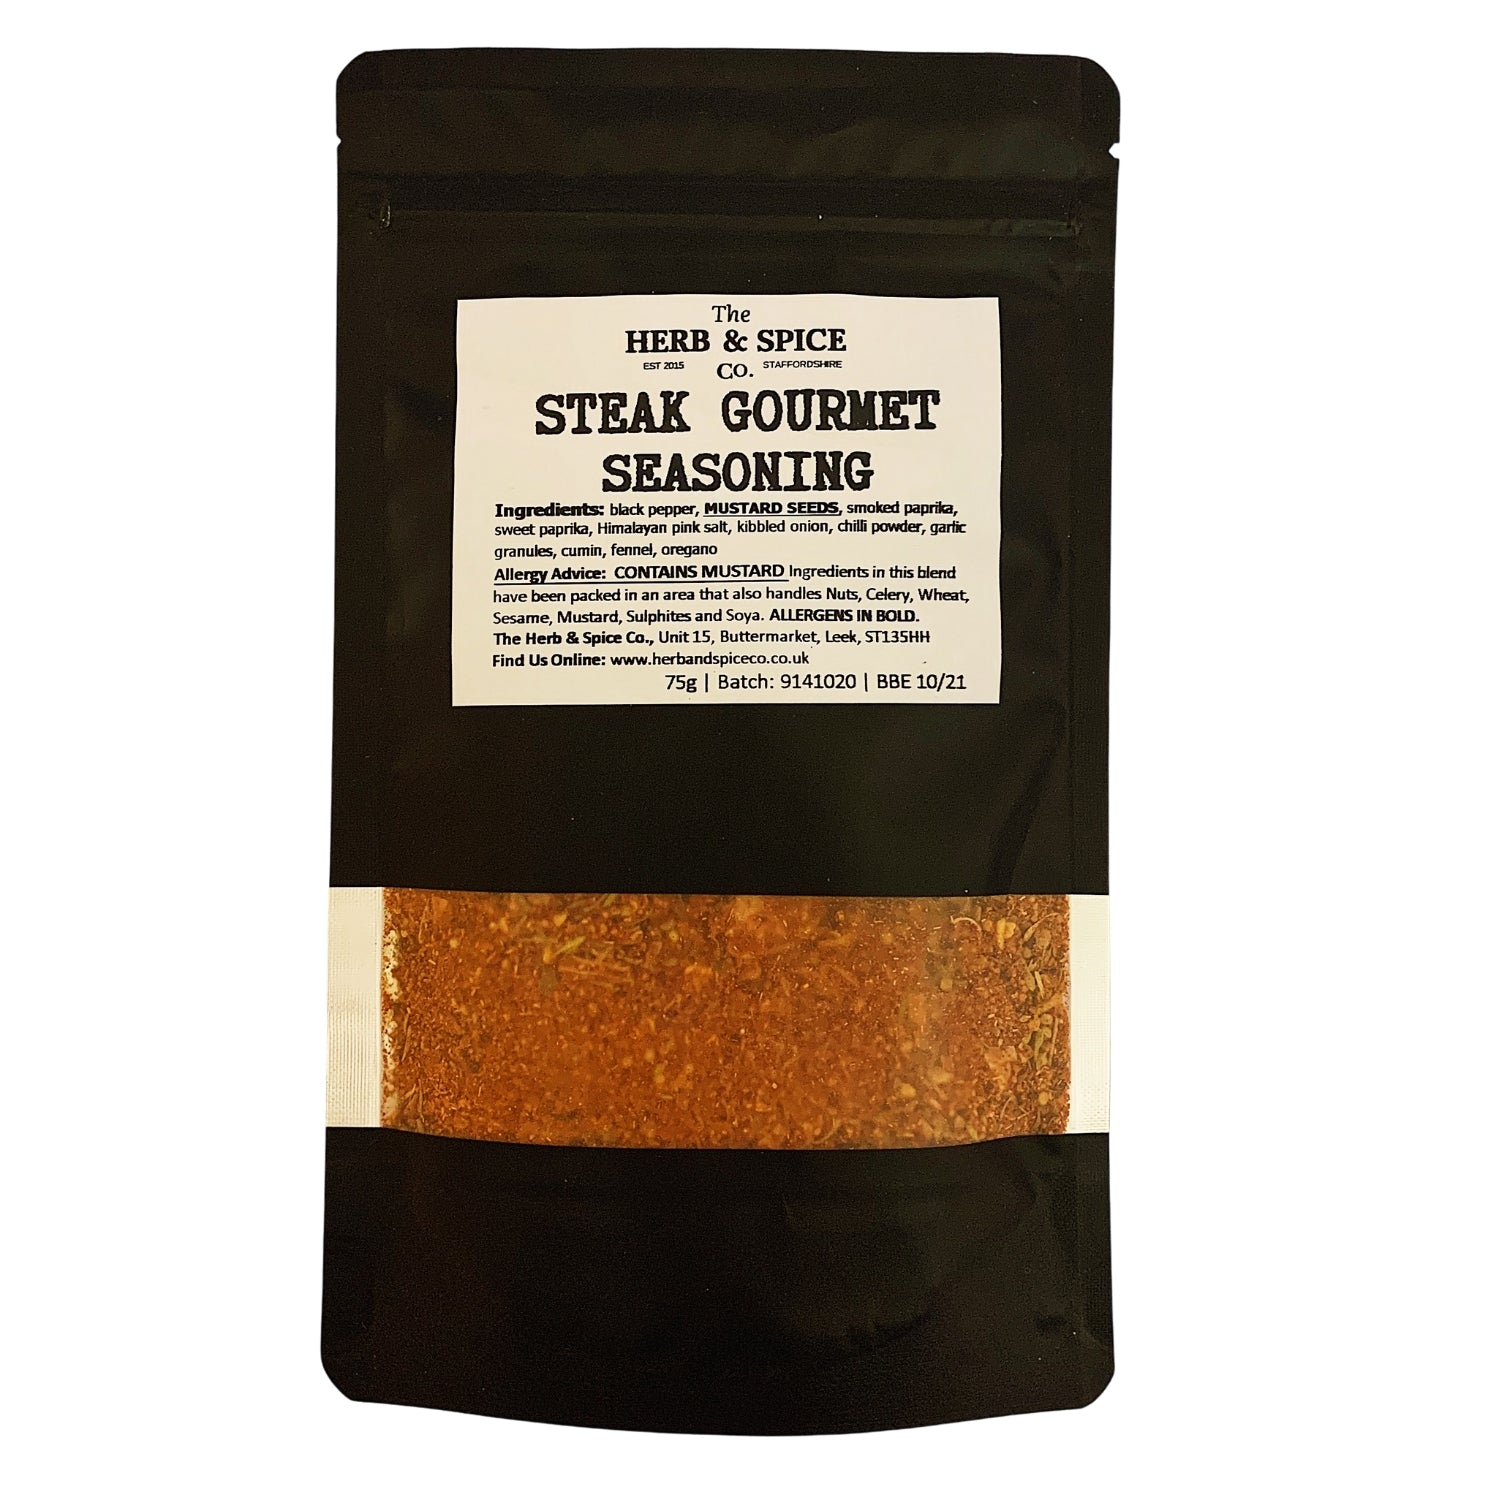 Steak Rub Steak Seasoning The Herb & Spice Co.